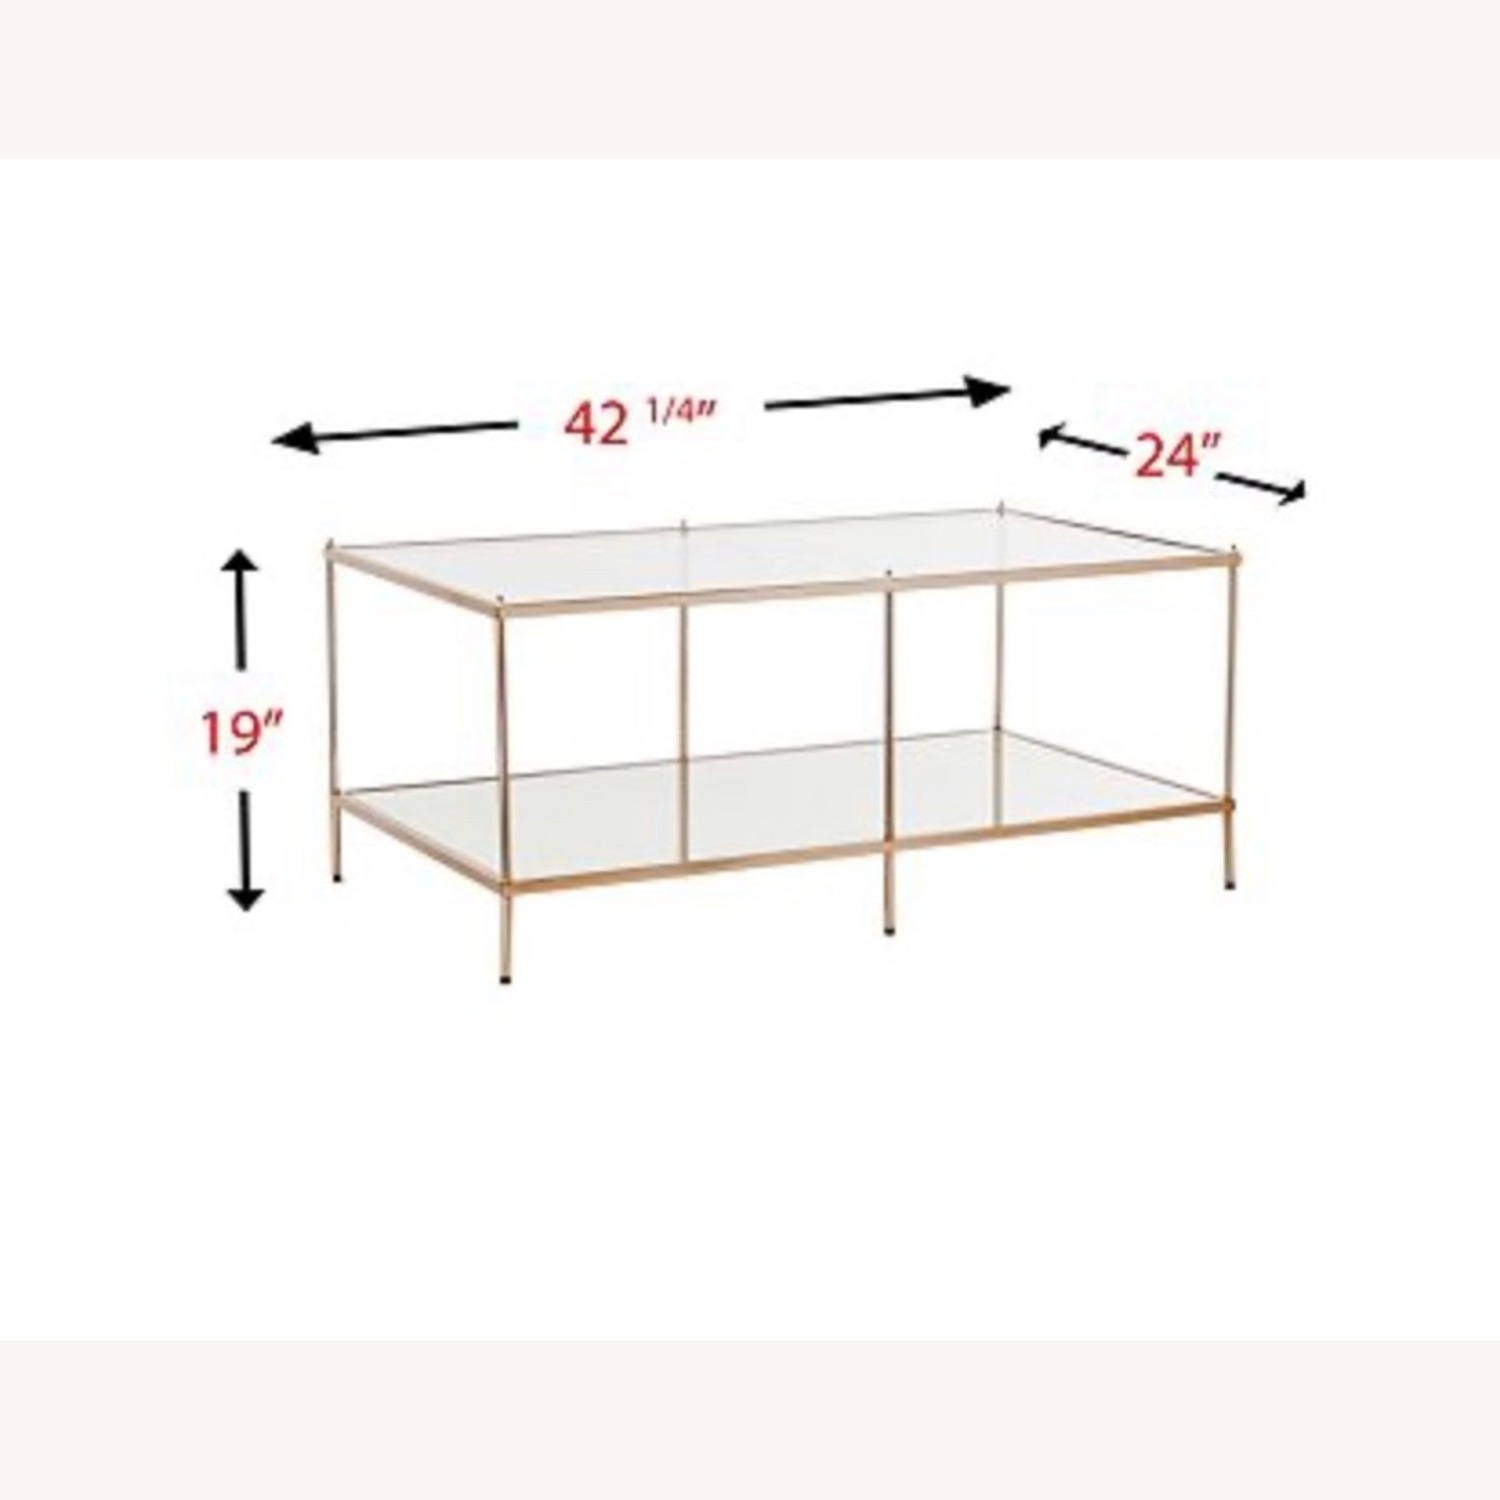 Macy's Glass Coffee Table with Metal Frame - image-1